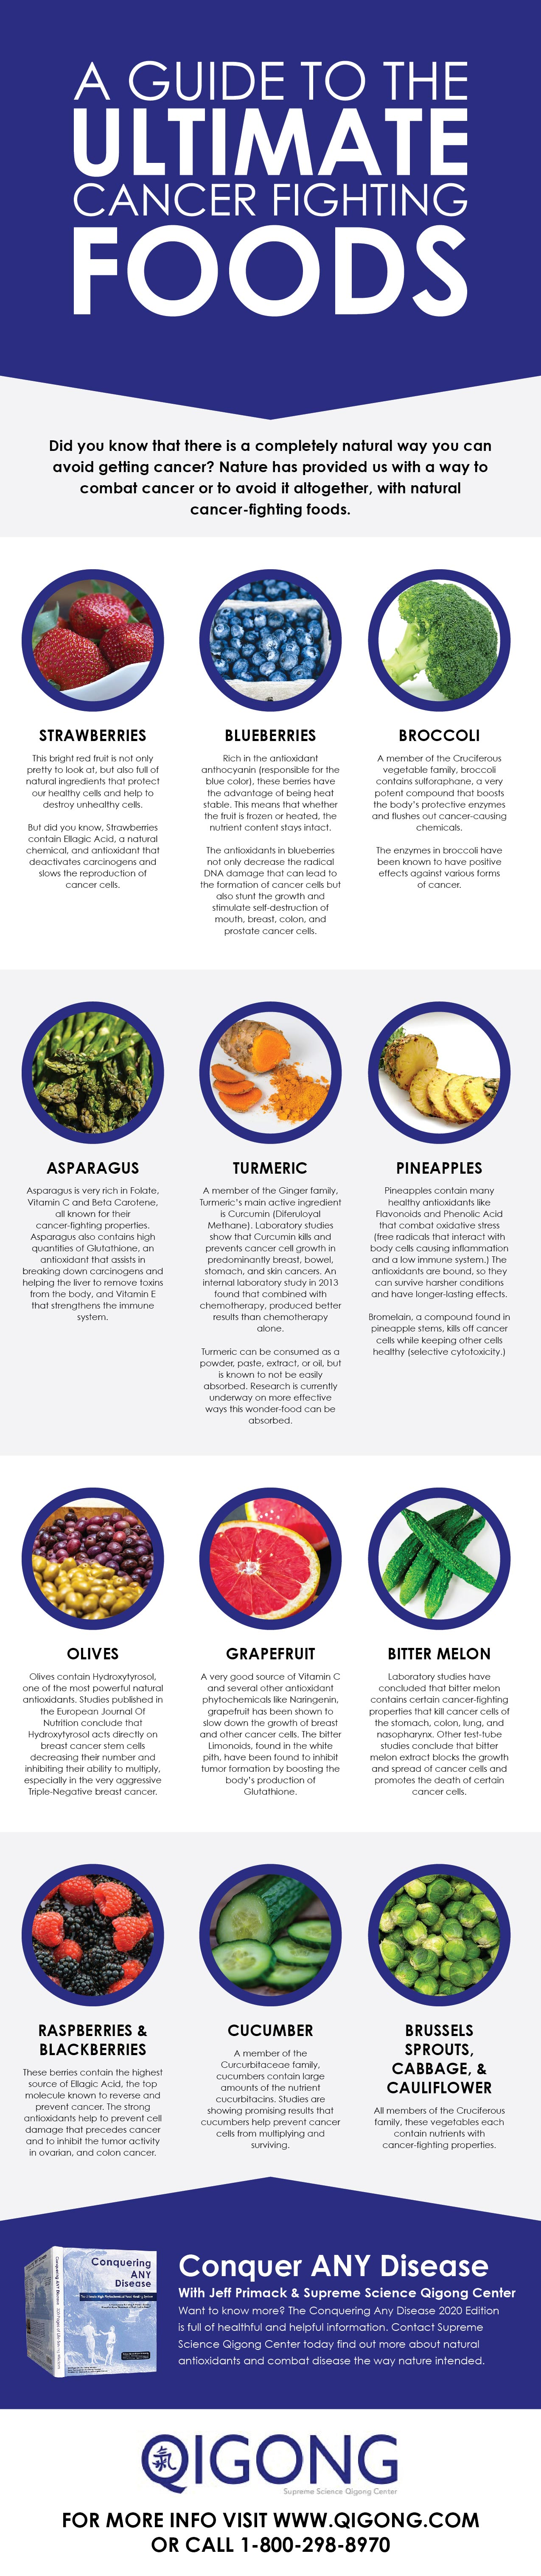 Discover Natural Foods That Have Cancer-Fighting Properties